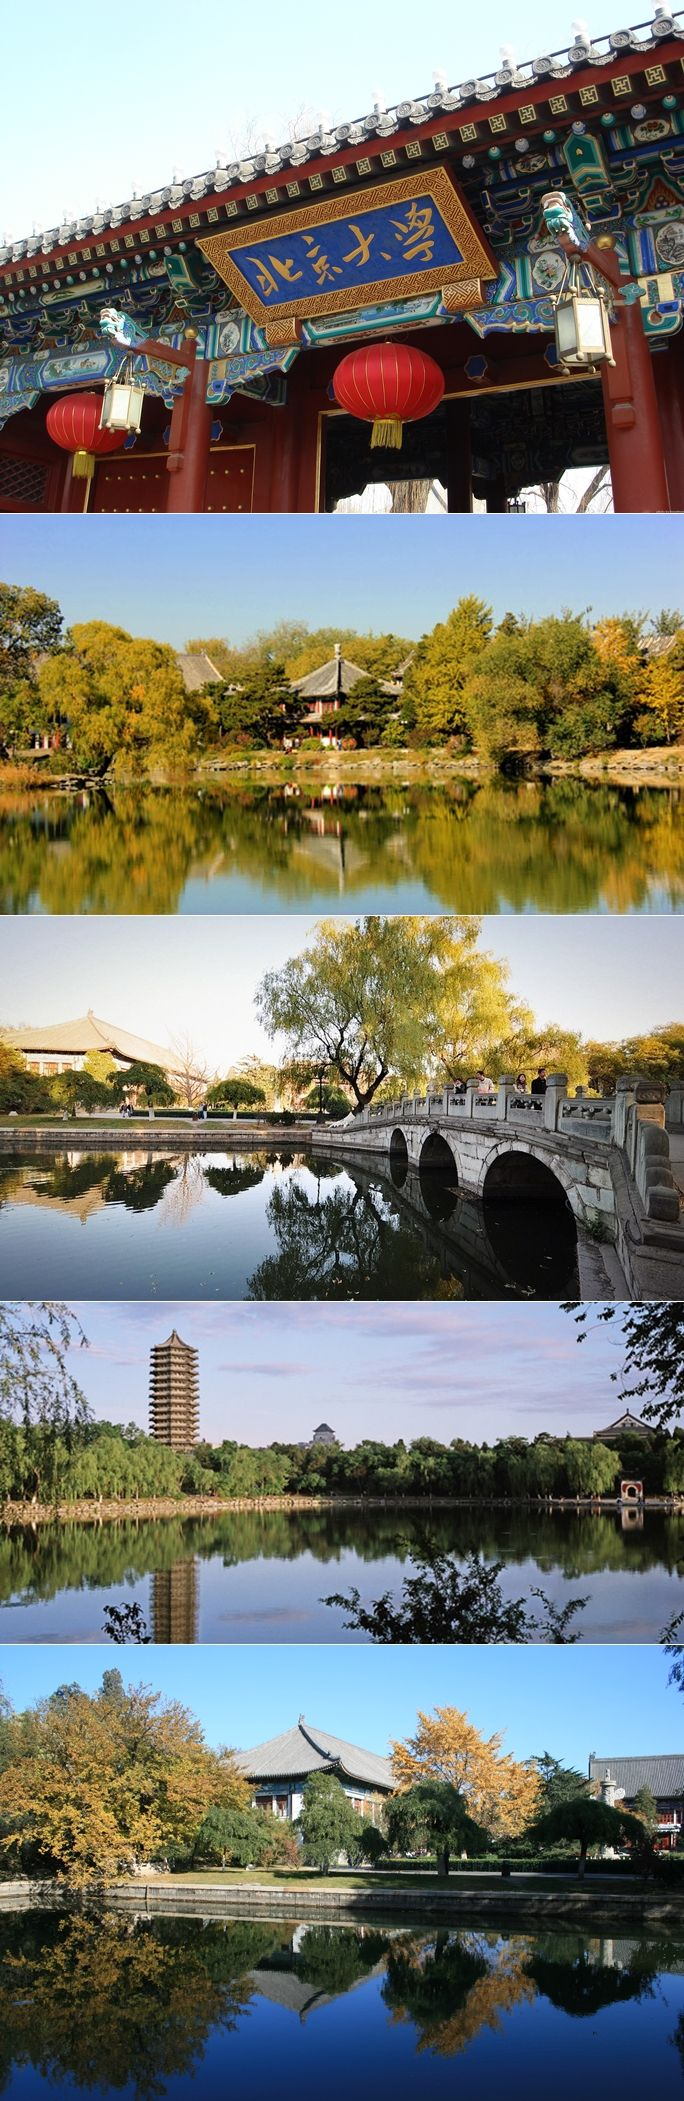 "Apart from the famous West Gate in Peking University, another popular spot - Weiming Lake, aka ""To-be-named Lake"" because the place is too stunning to be named, can bring you a better idea of how poetic can a university be."